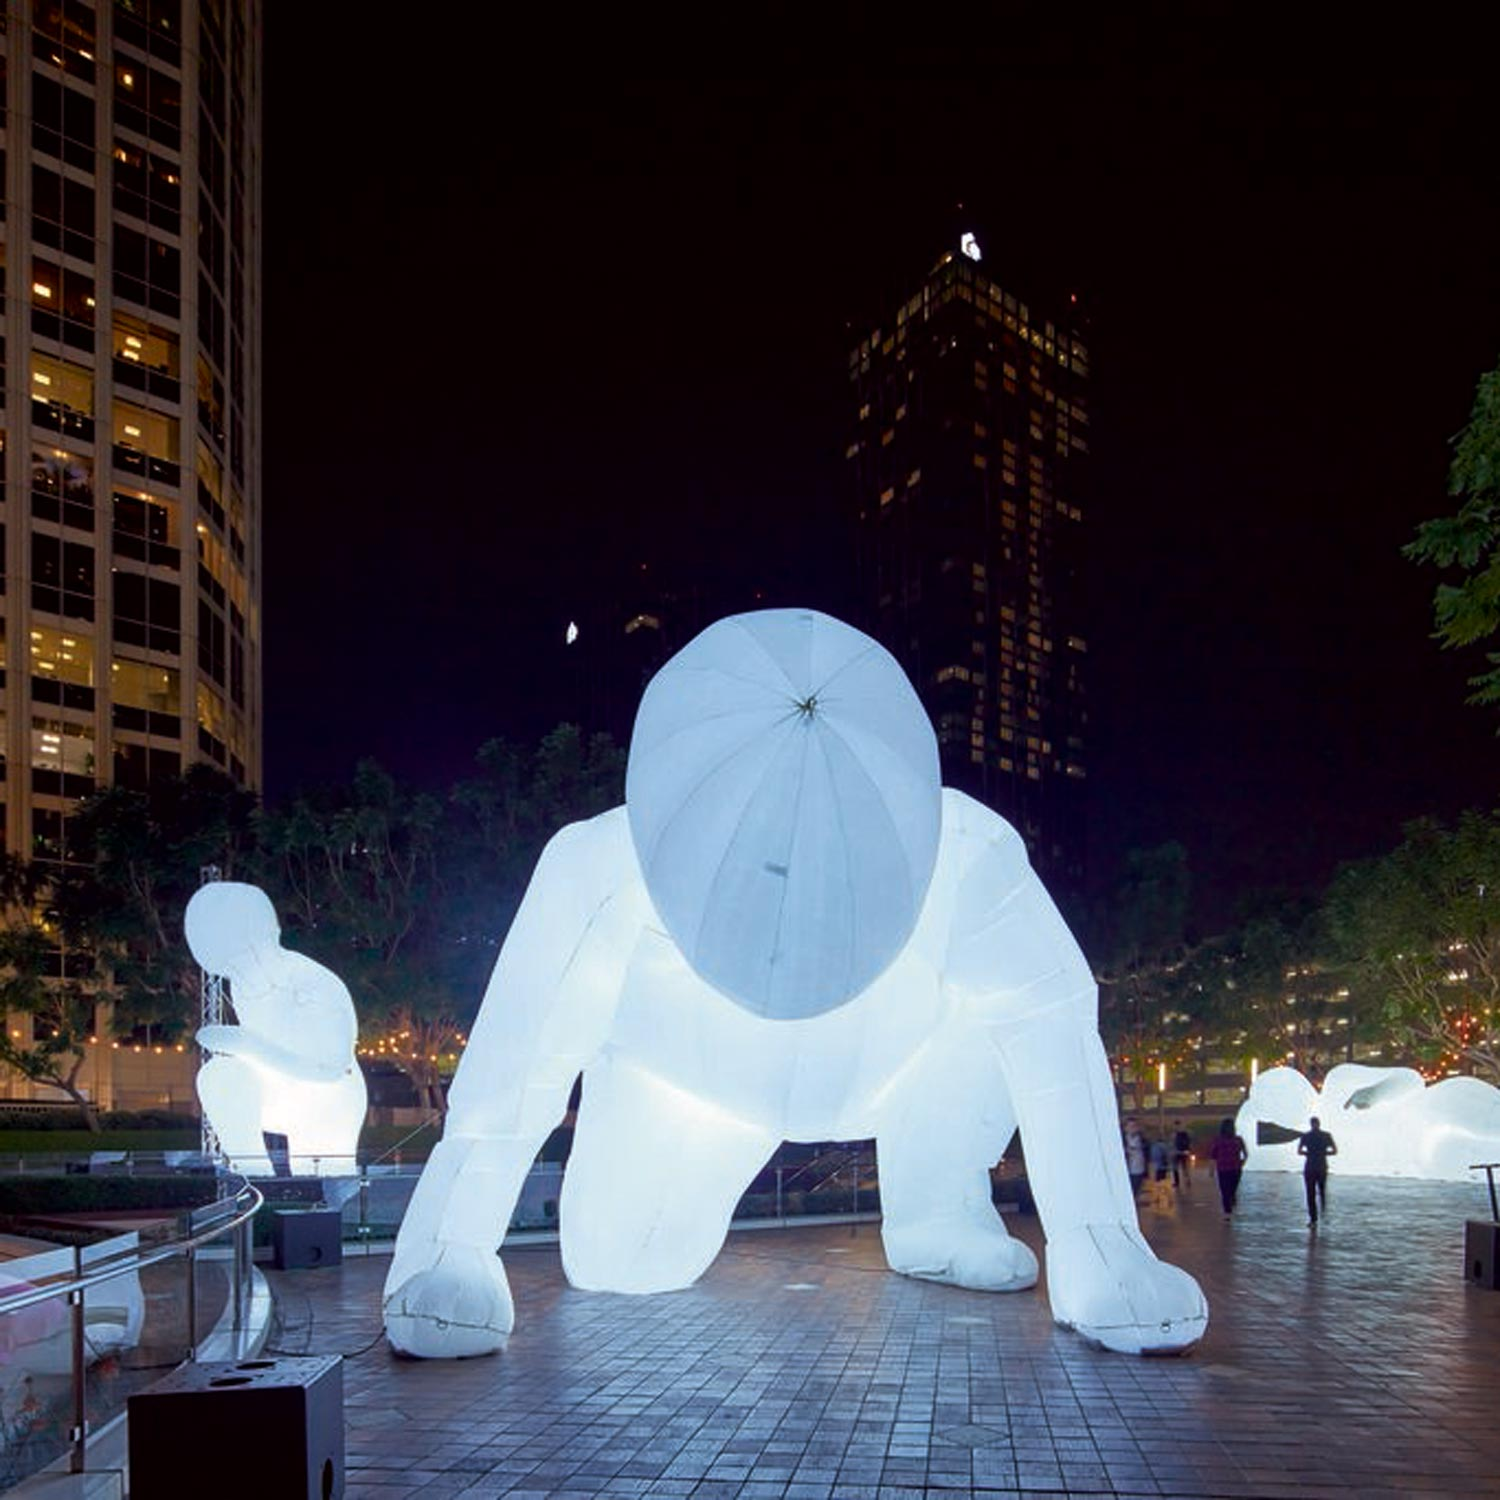 Image of Internally Lit Inflatable Figures by Amanda Parer